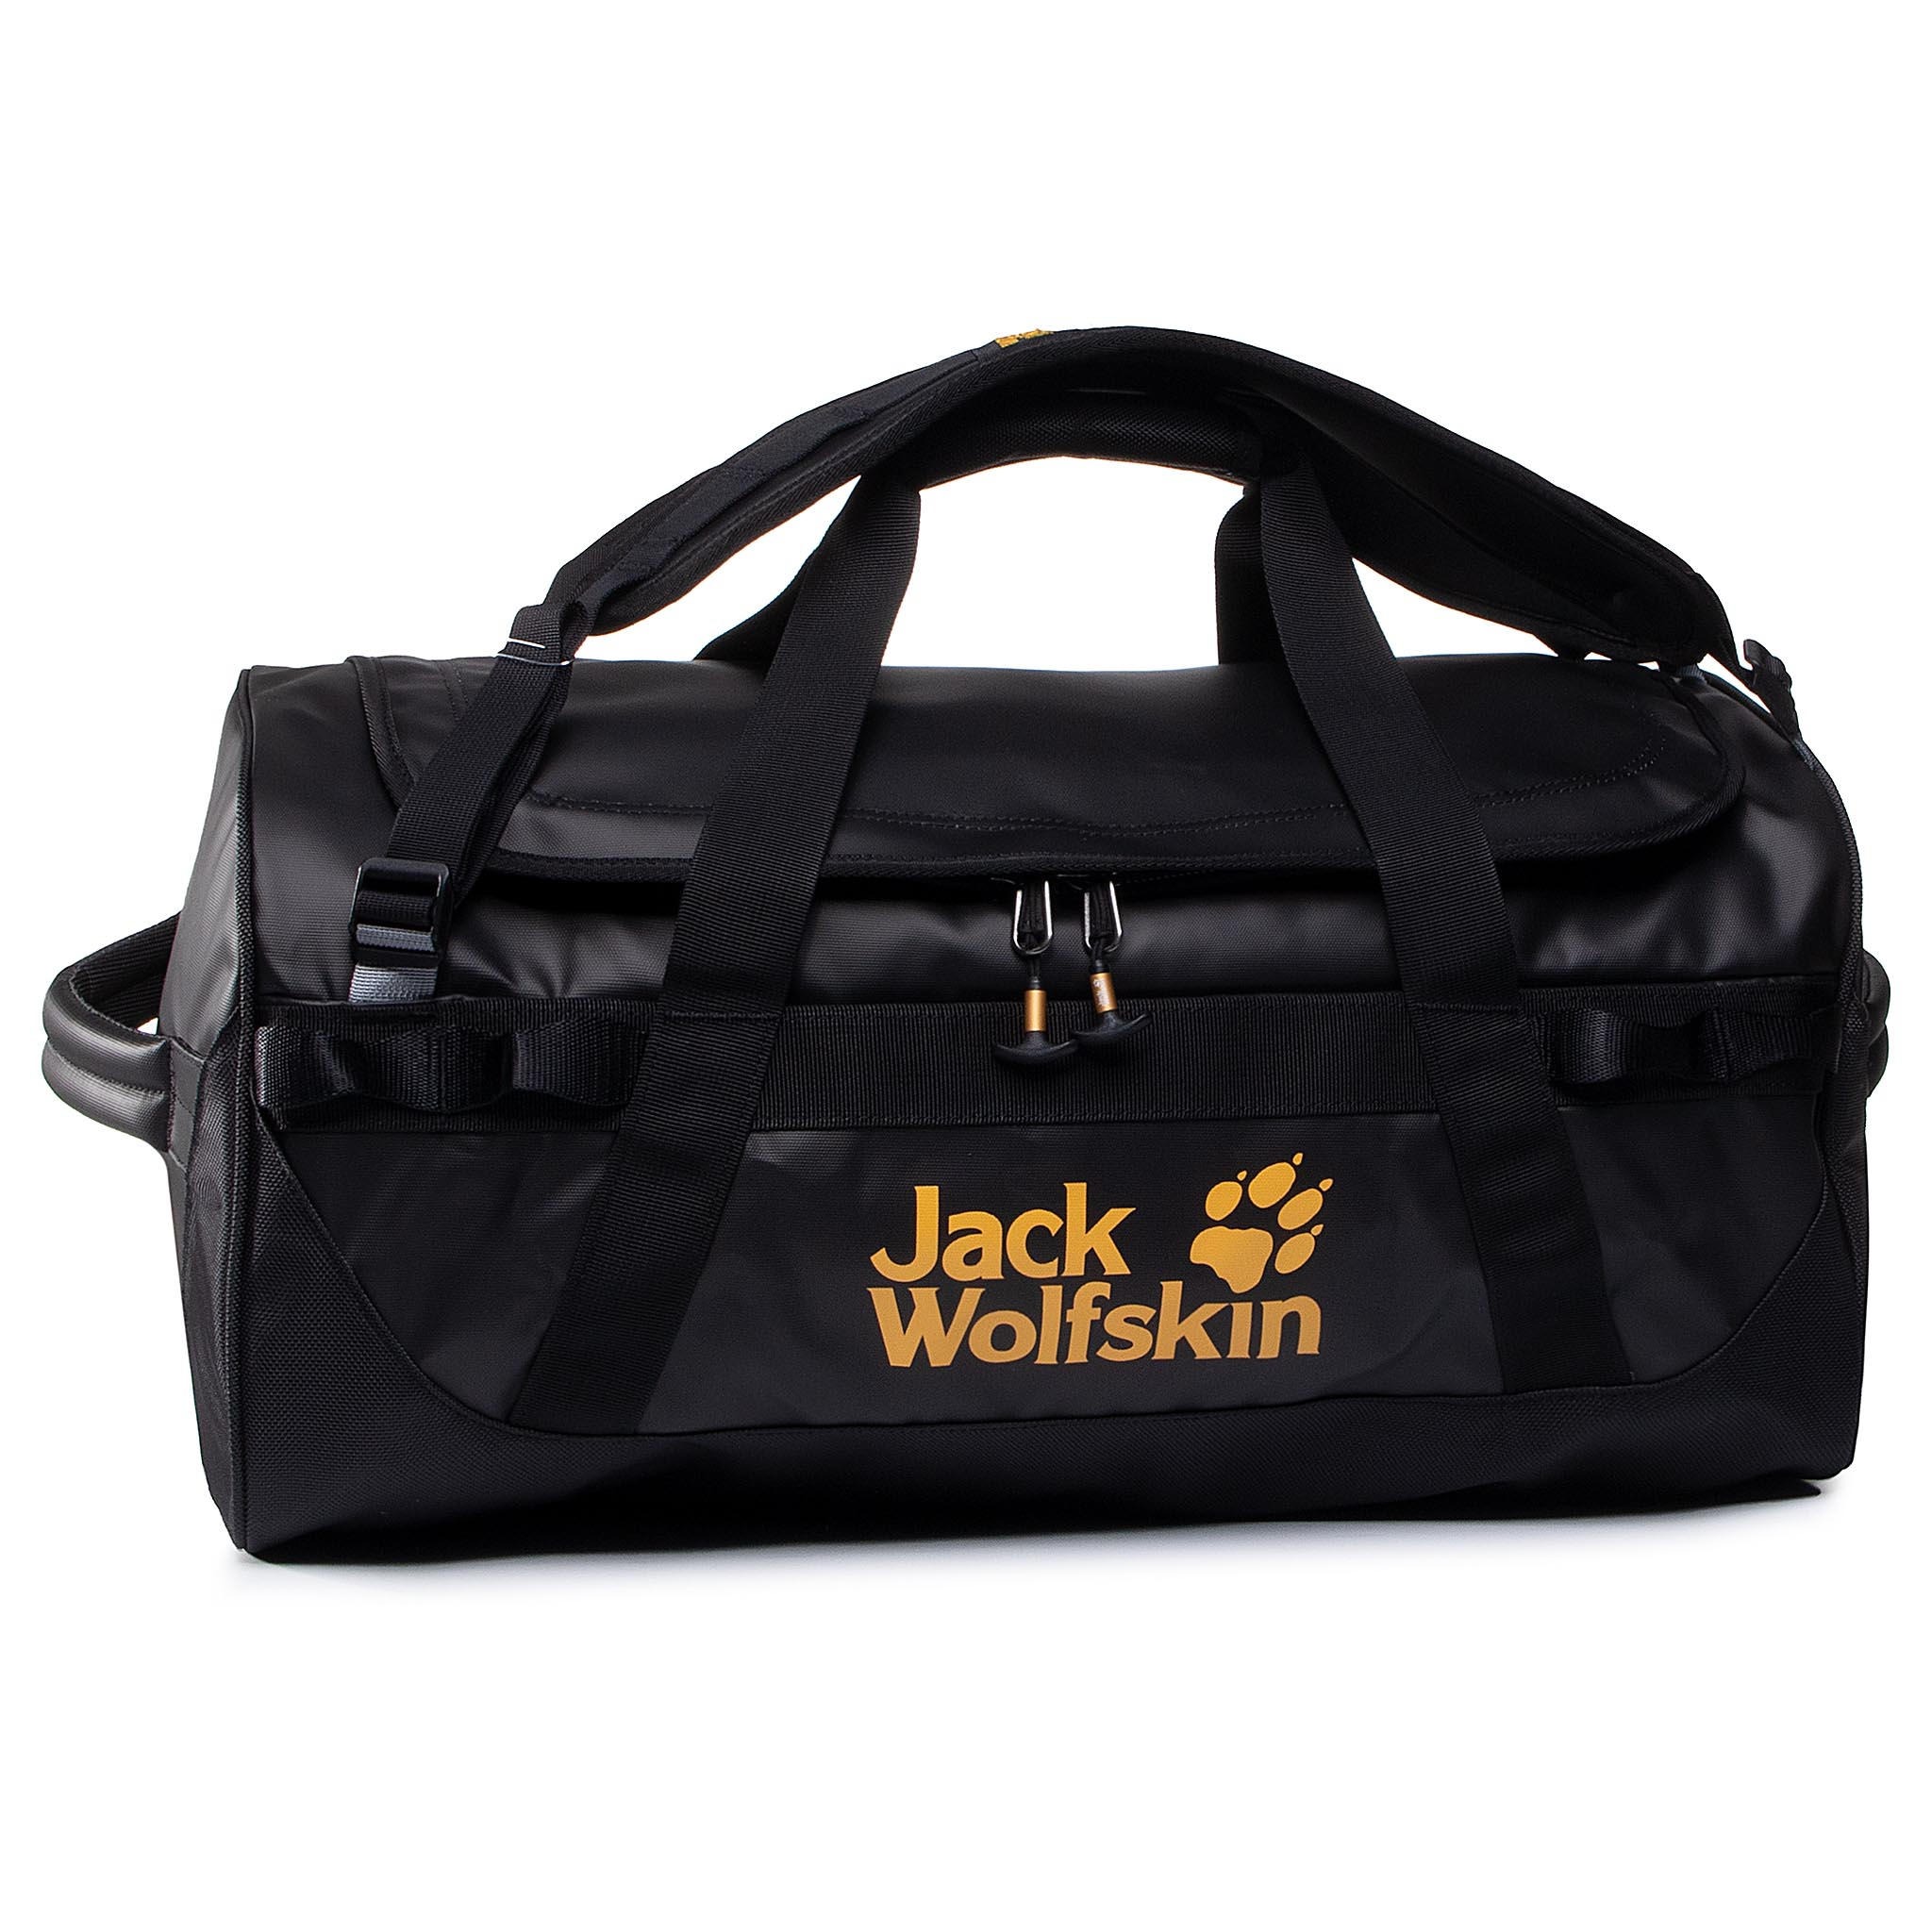 Geantă JACK WOLFSKIN - Expedition Trunk 40 2008631 Black